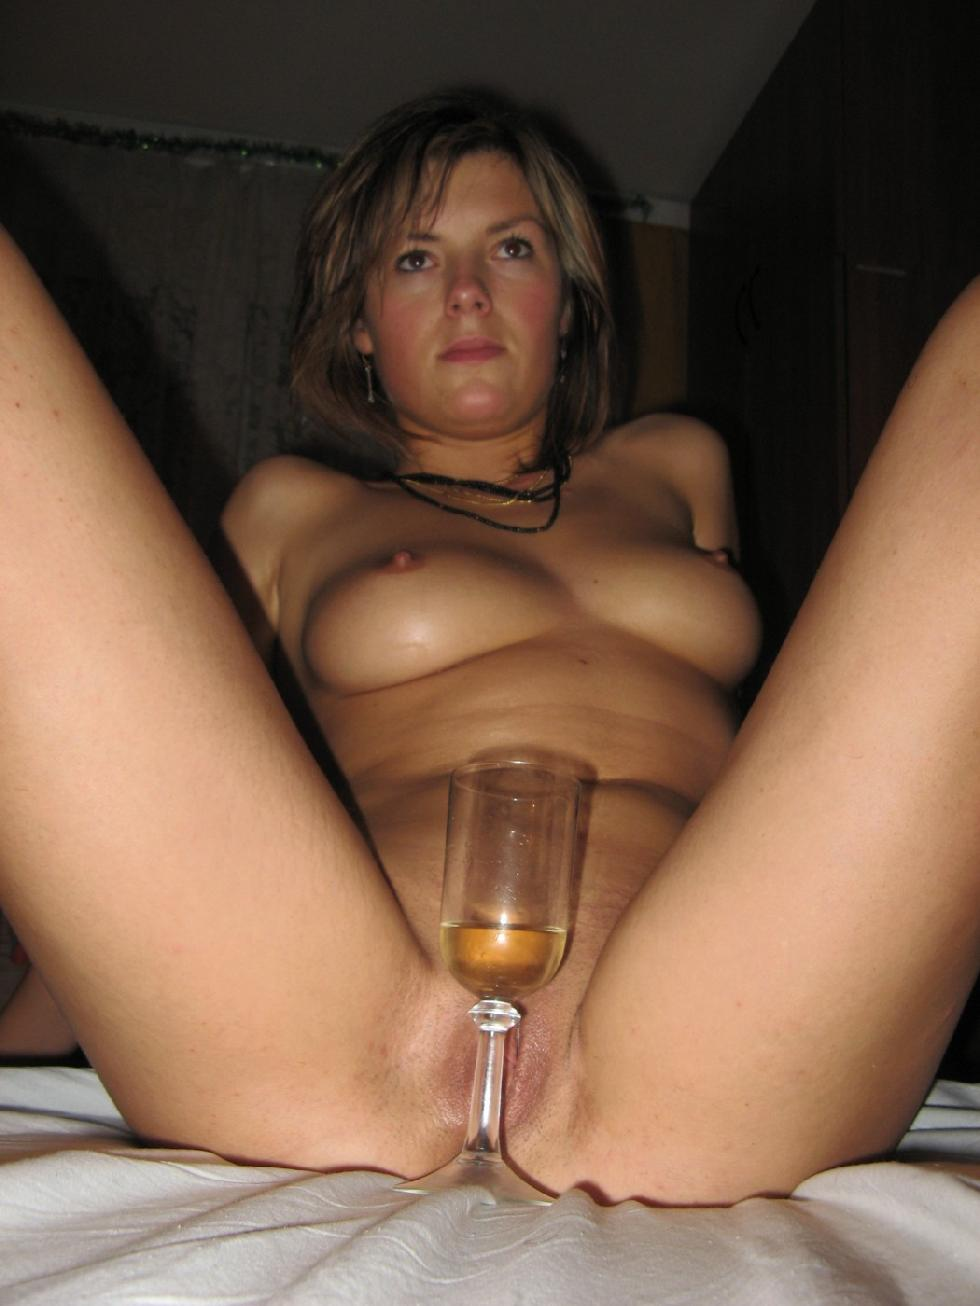 Nice evening with pretty girl - 11